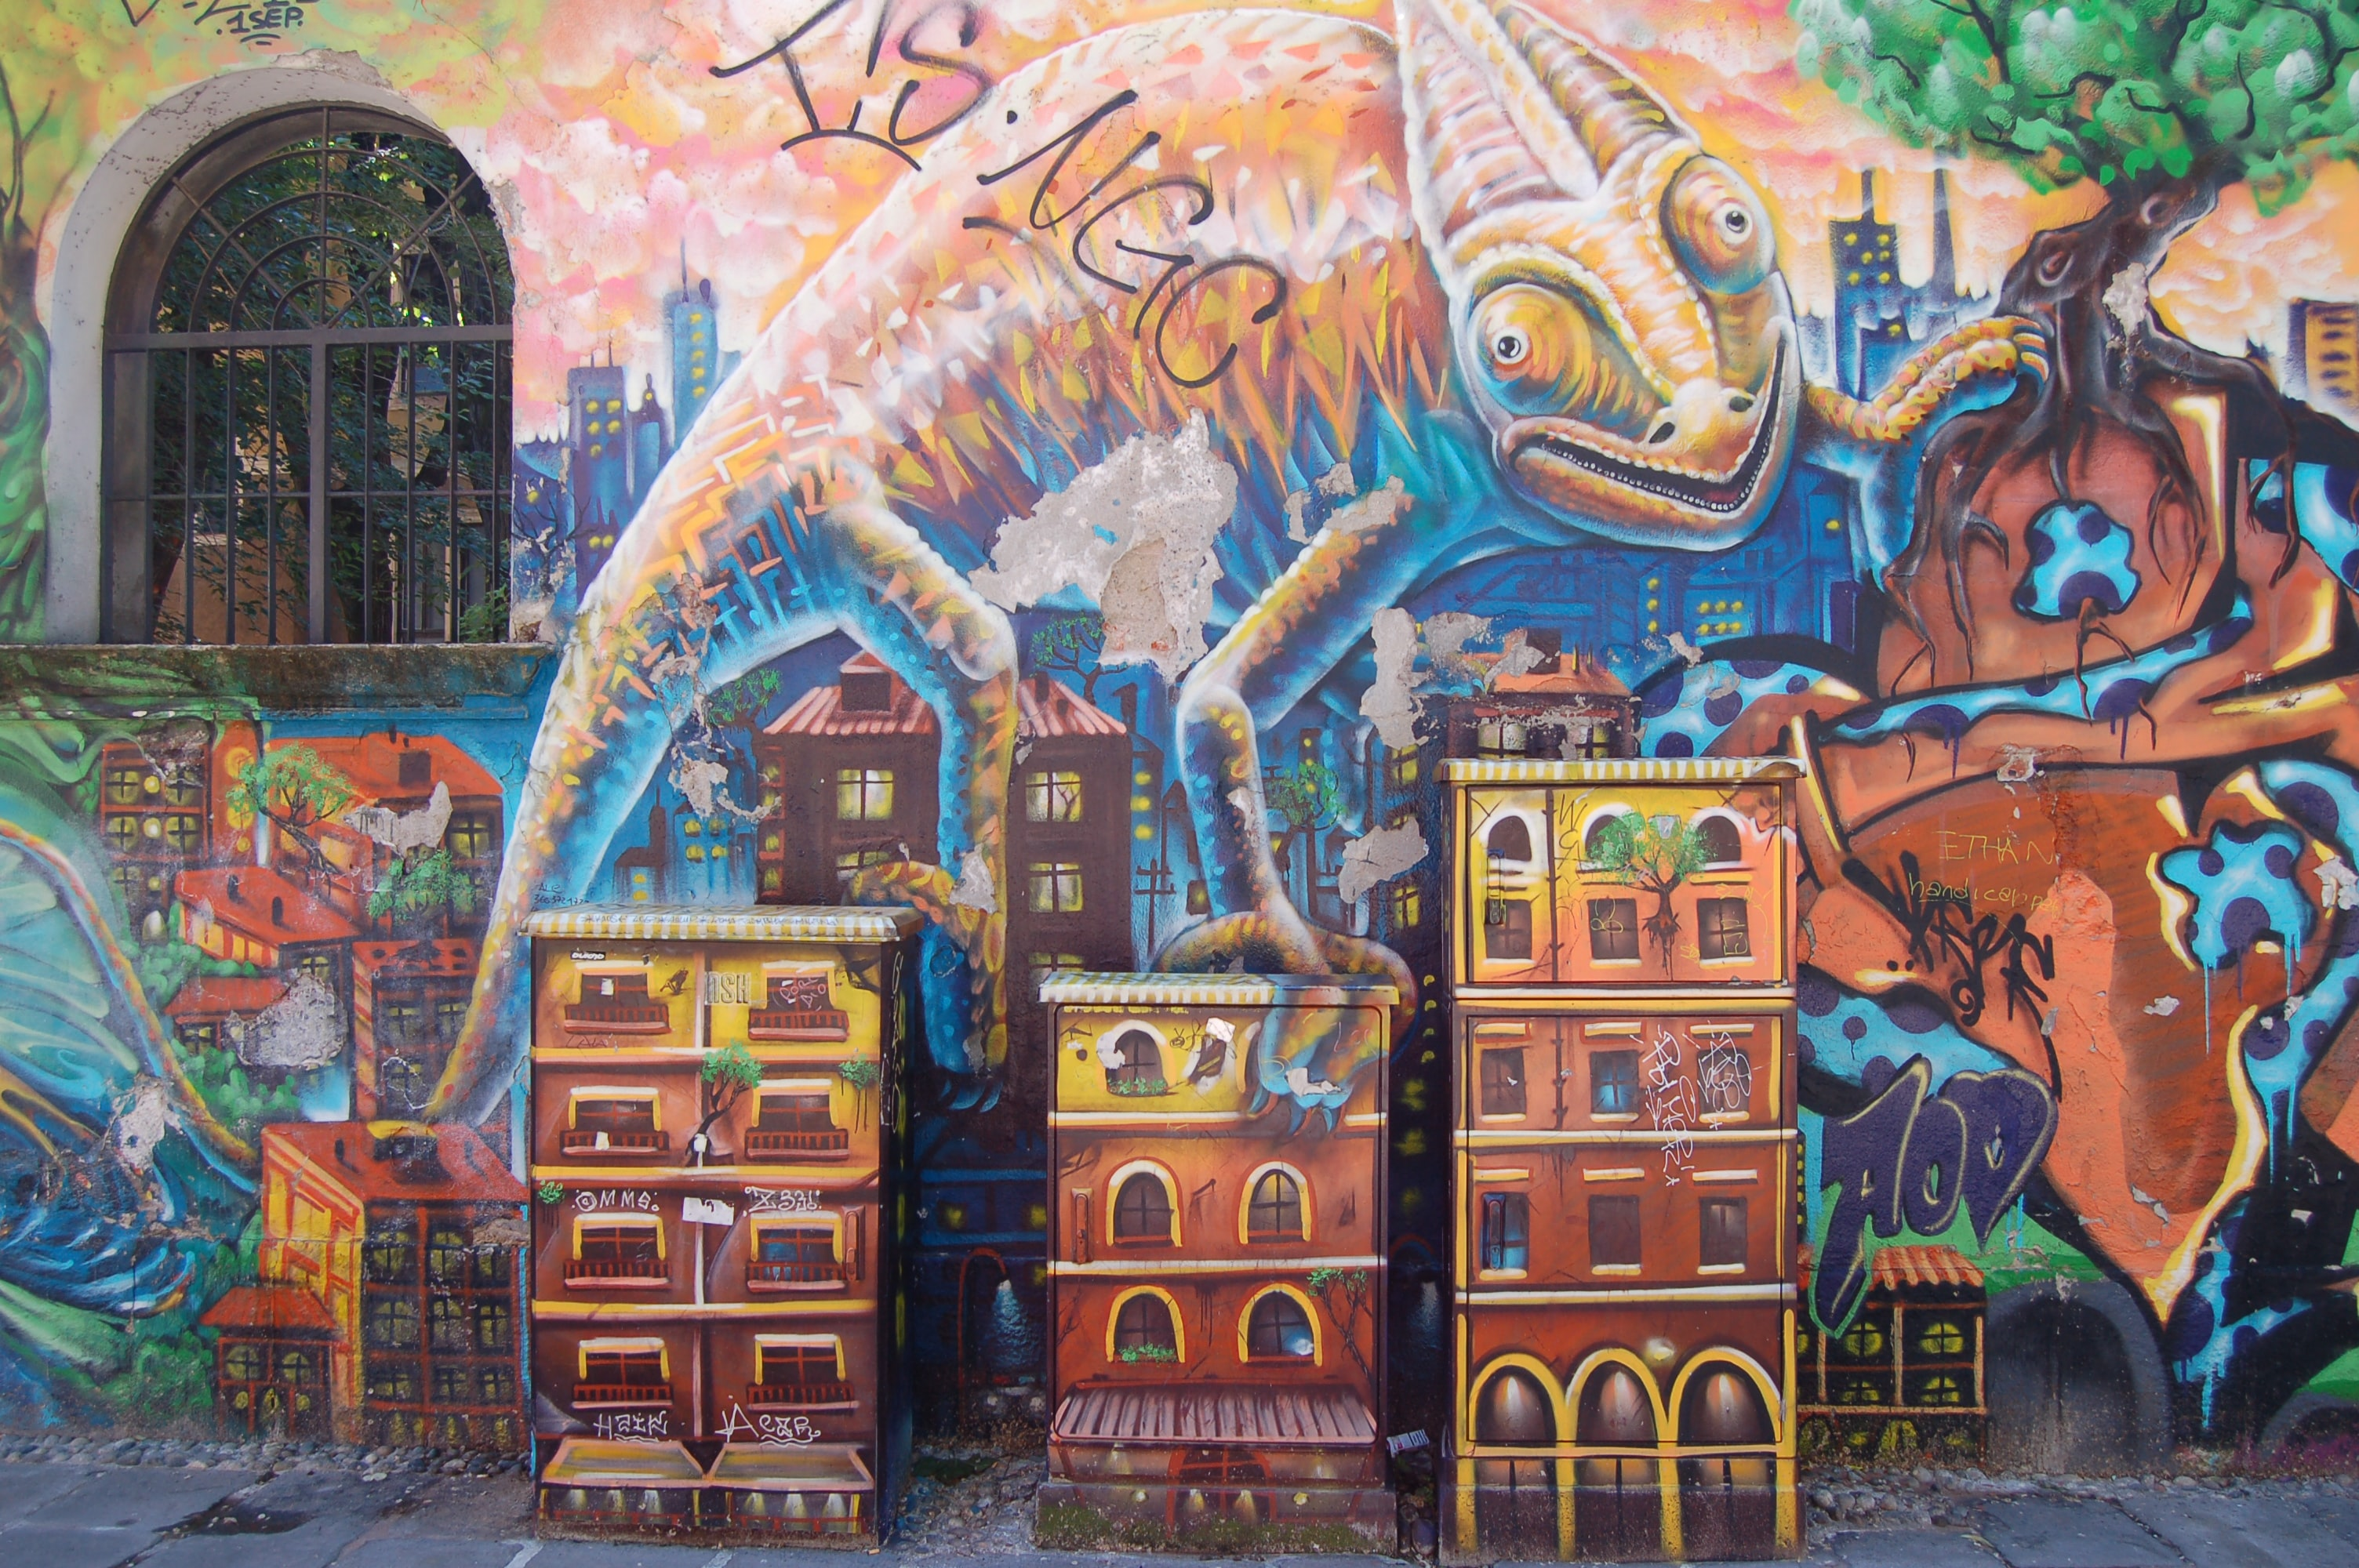 A wall mural of an oversized gecko climbing over tall city buildings.